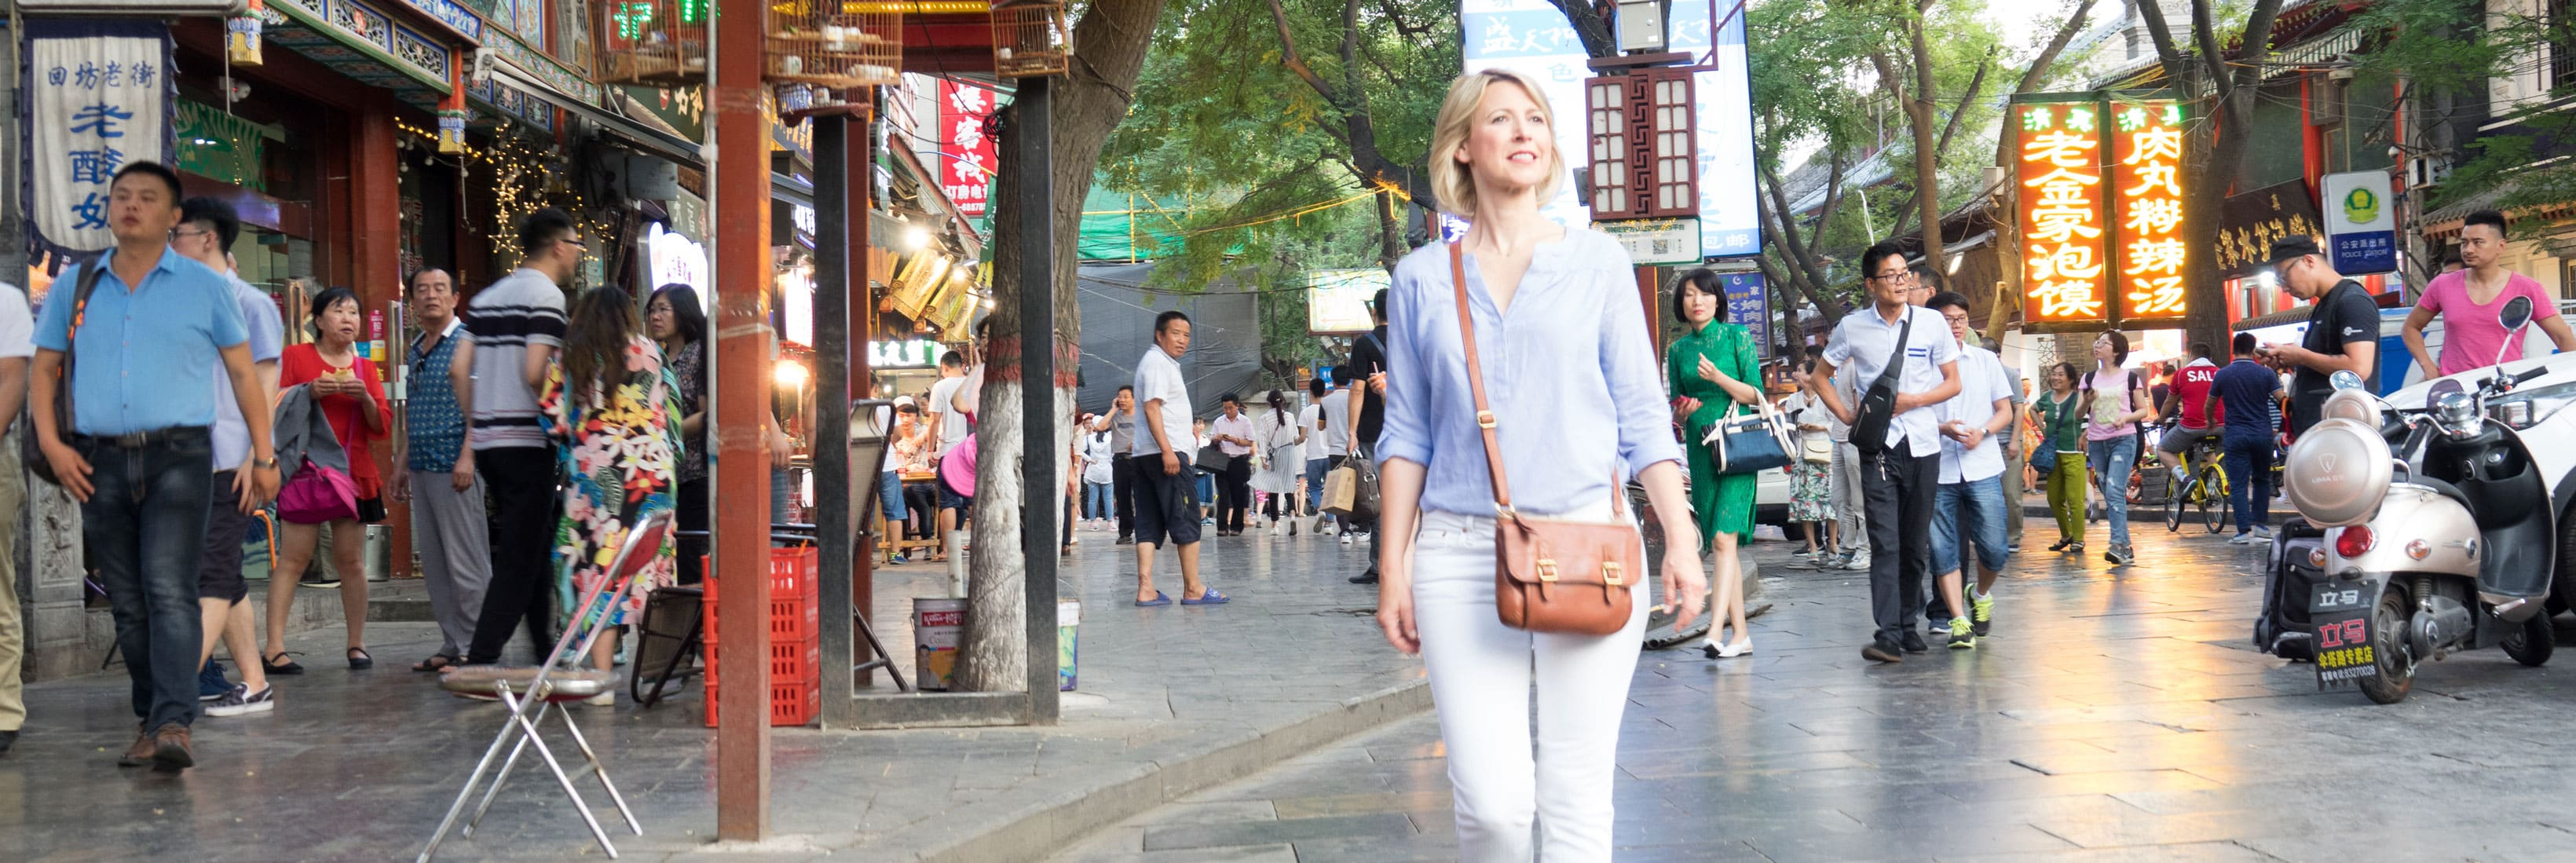 Samantha Brown - Places to Love - Xi'an China